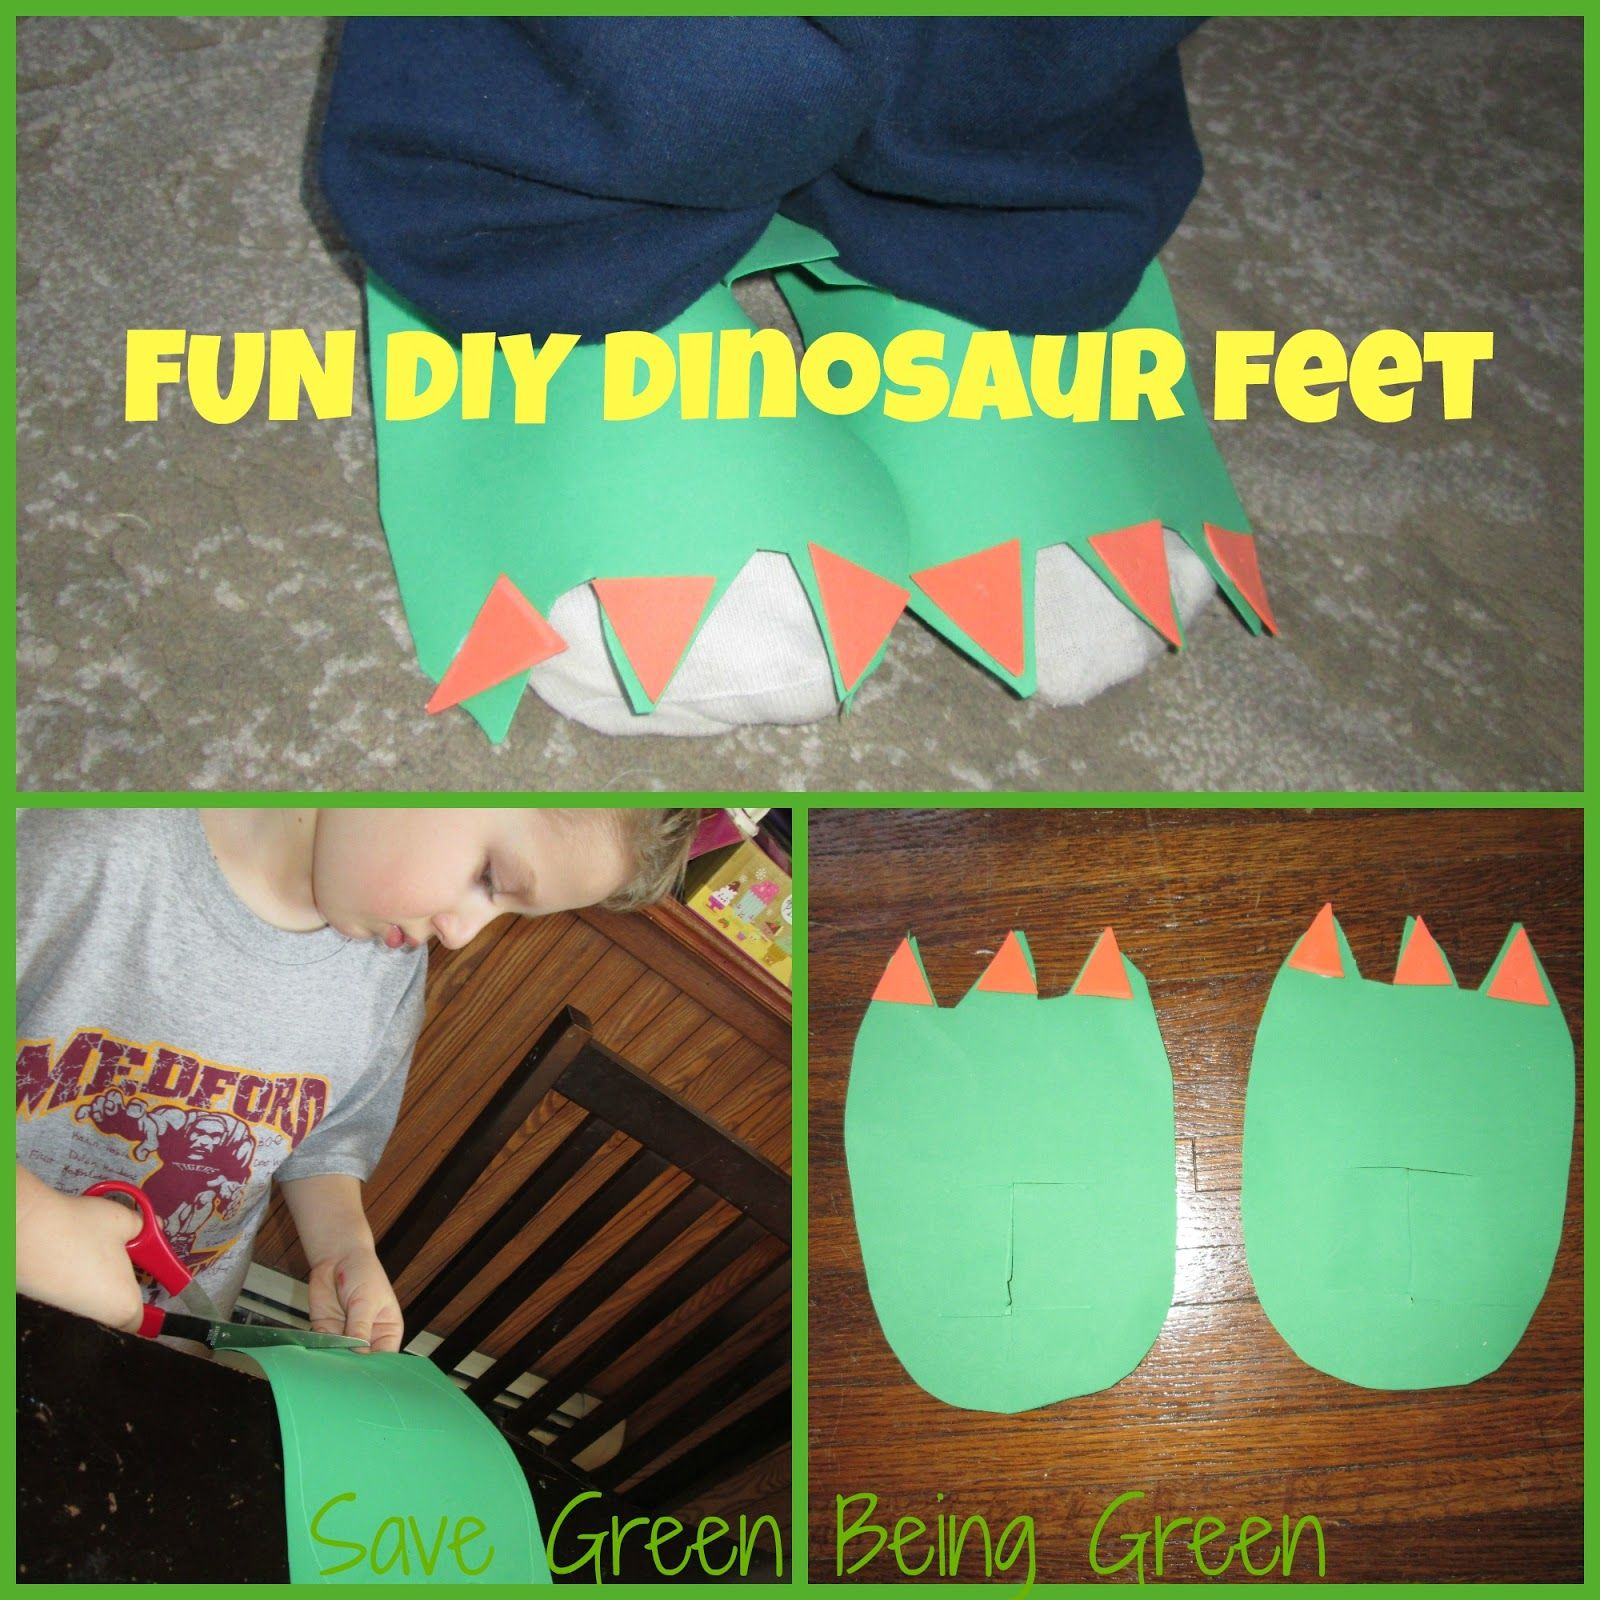 DIY Dinosaur Feet Time To Get Creative With The Kids And Make Some Out Of Craft Foam